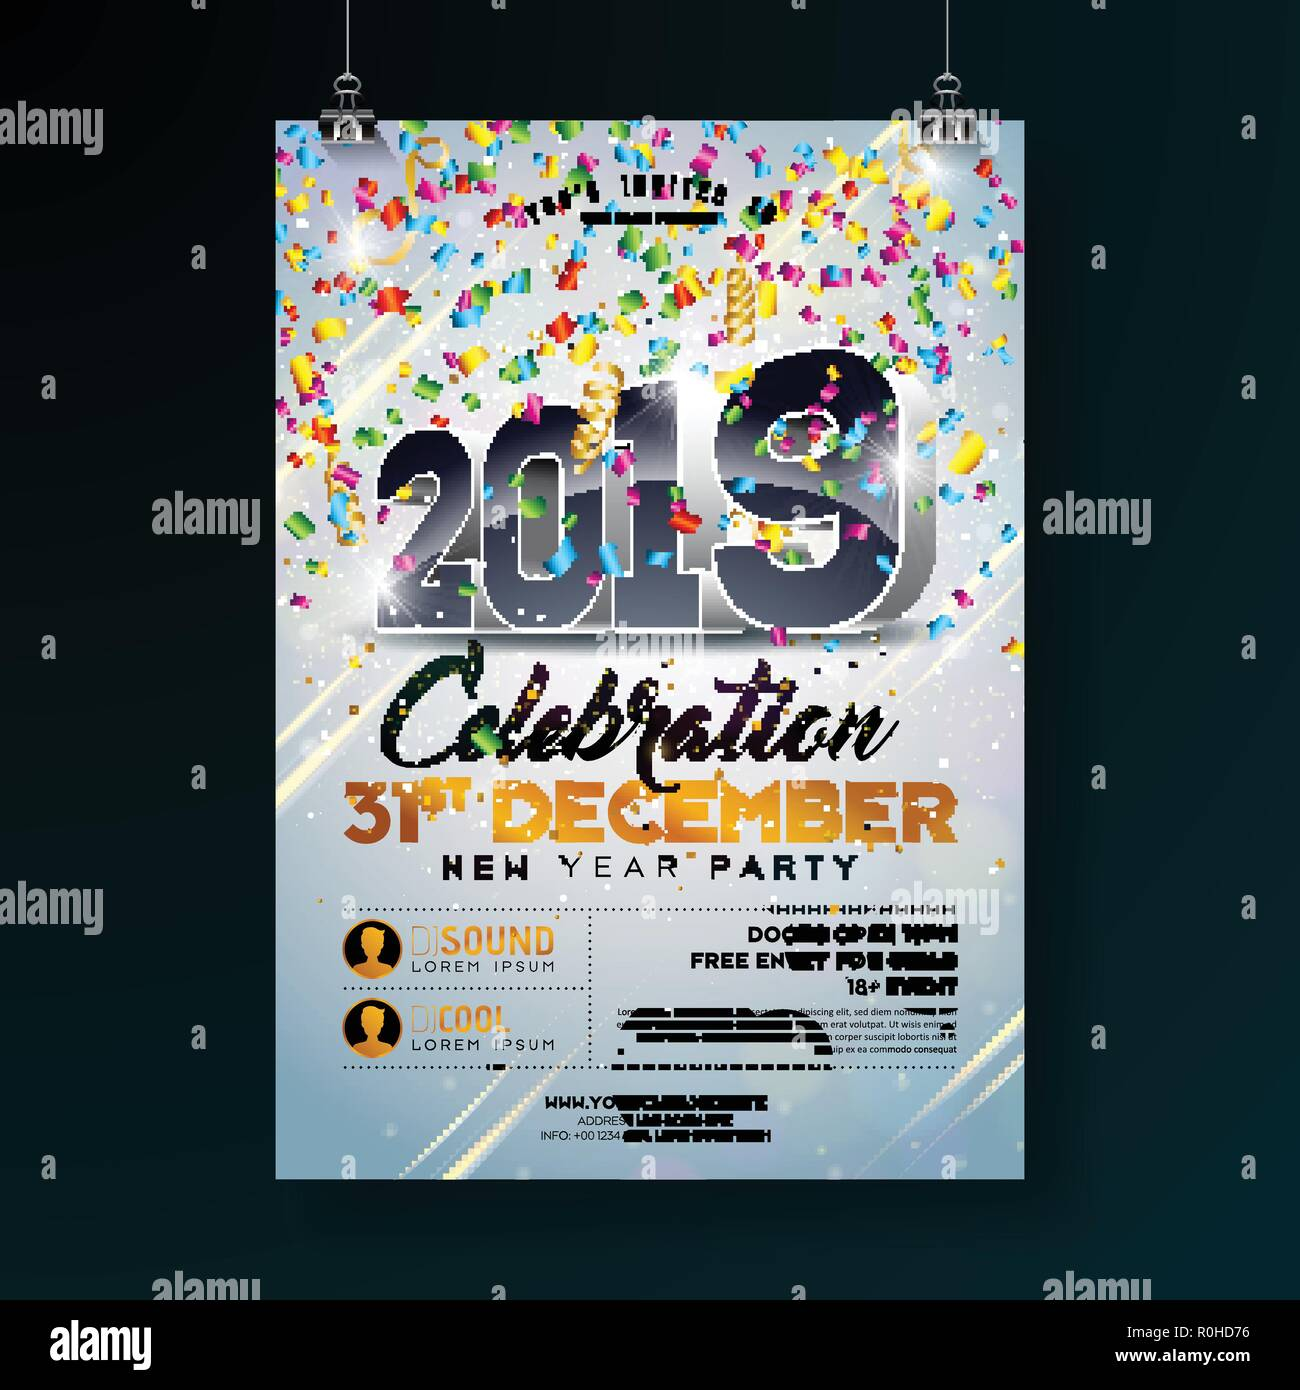 new year party celebration poster template illustration with 3d 2019 number and falling colorful confetti on shiny clear background